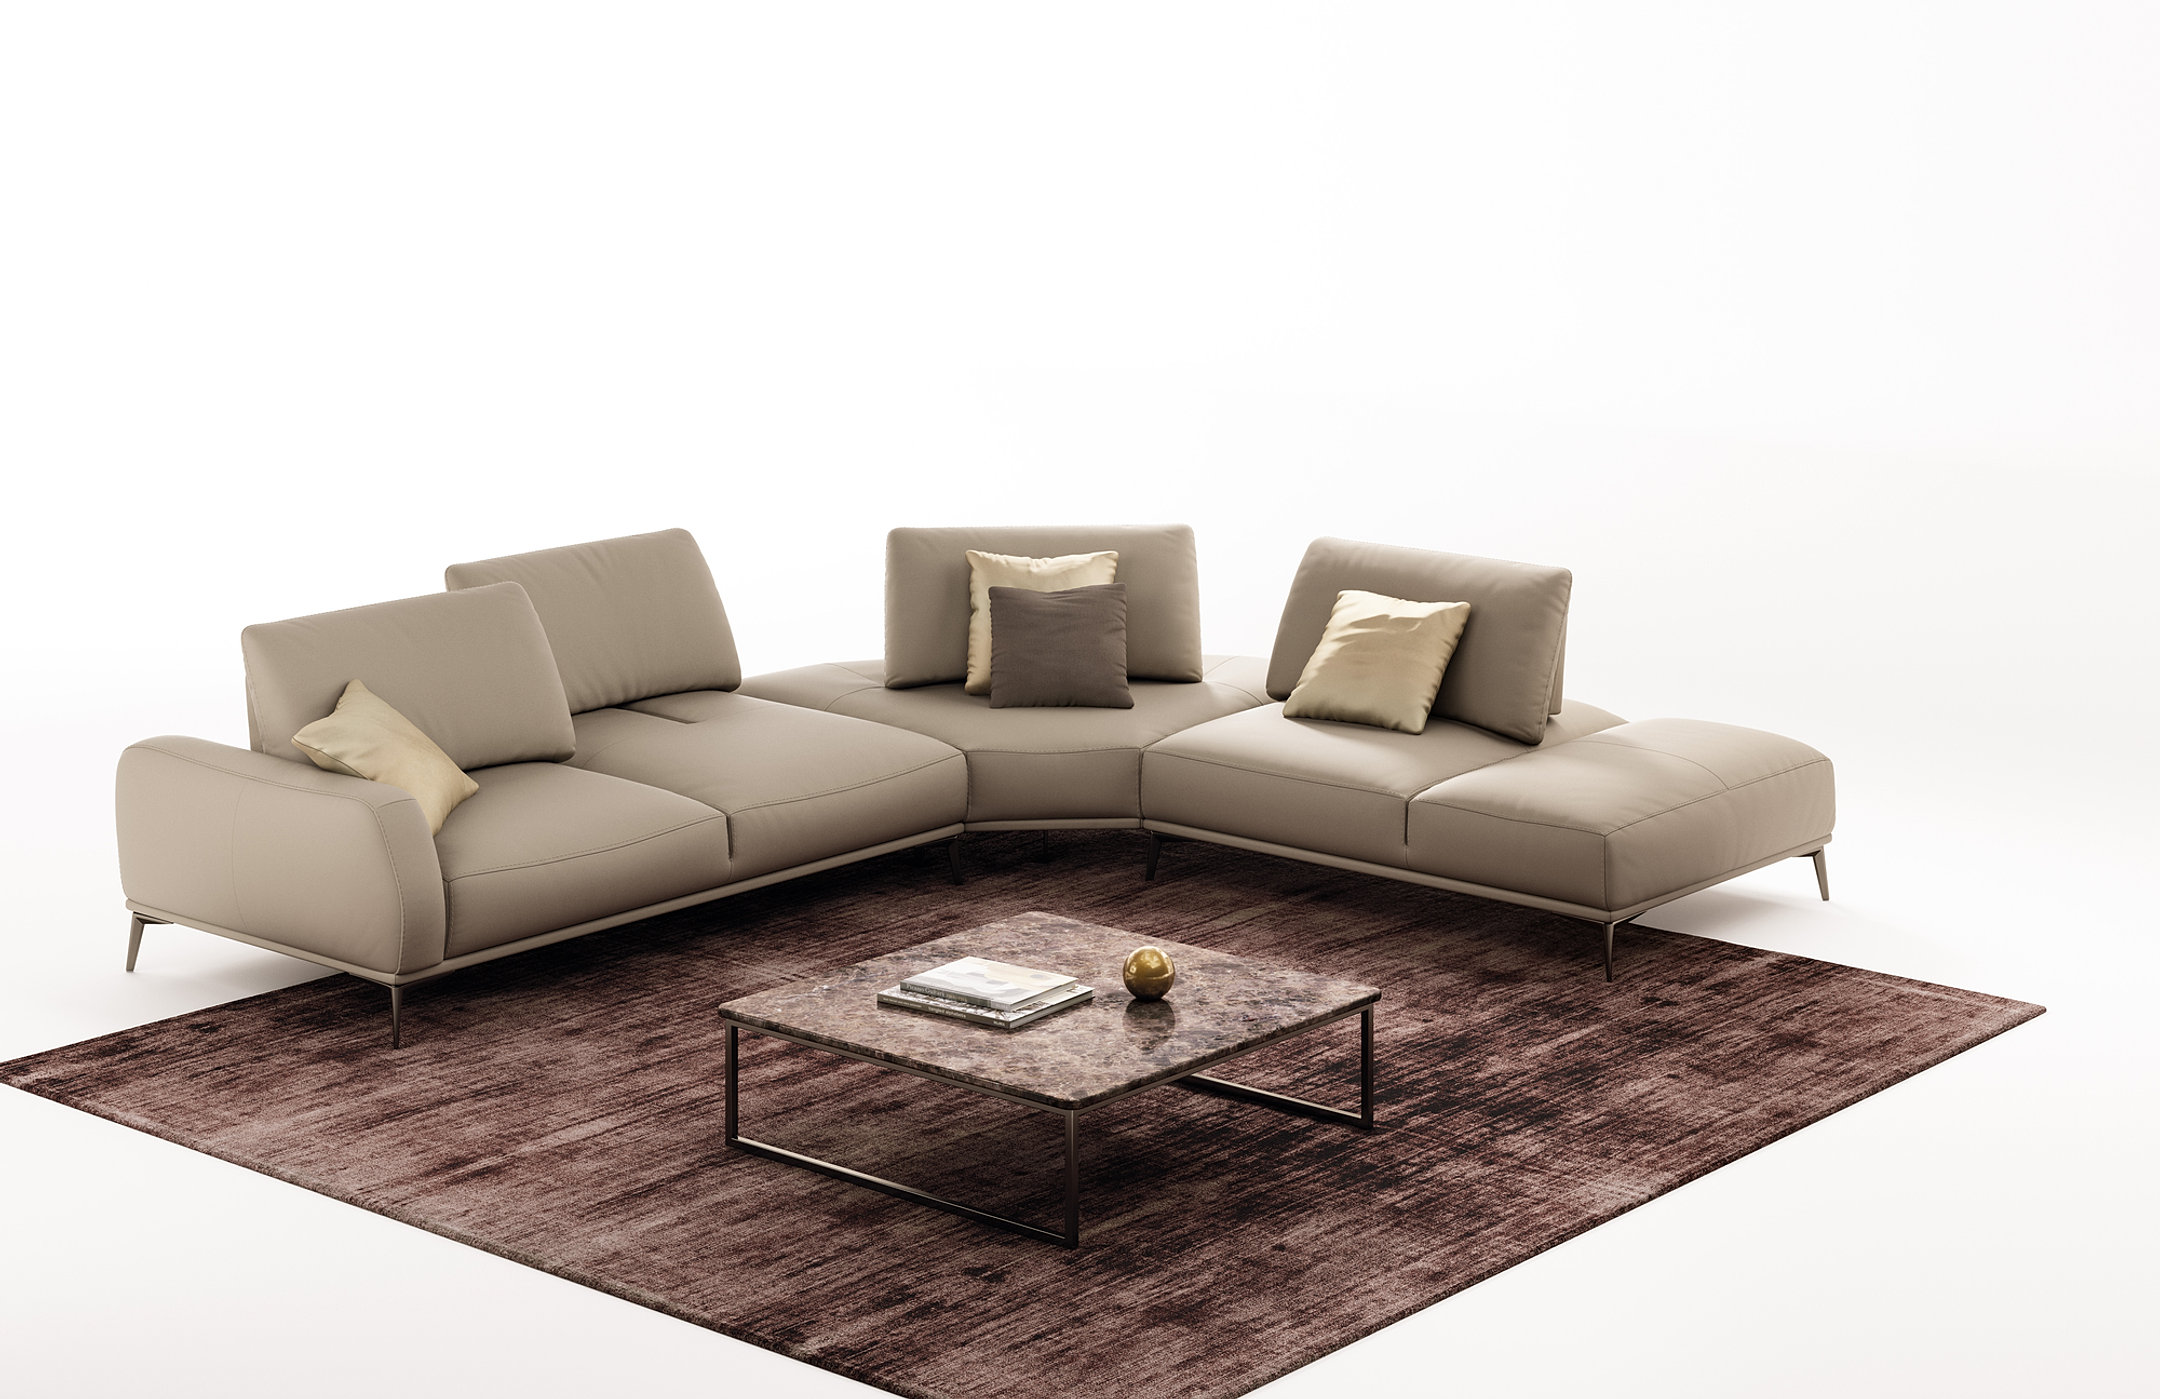 Italian Sofa Auckland Custom And Italian Furniture Auckland Newmarket Parnell